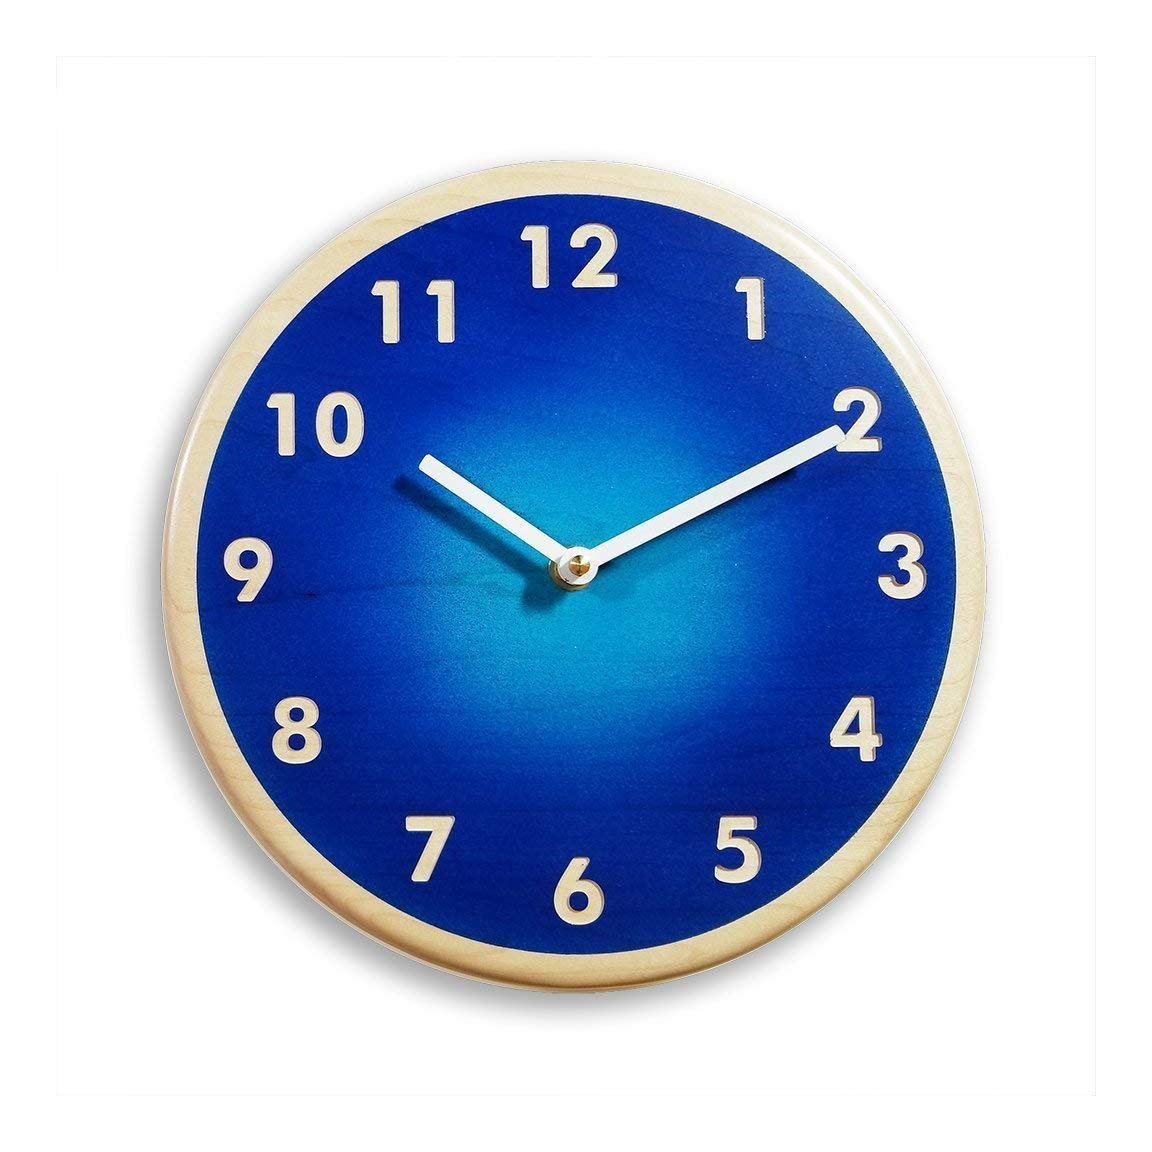 Maple wood wall clock. Modern wall clock. Blue wall clock. 10 inch wall clock. Deep blue and light blue airbrushed colors.